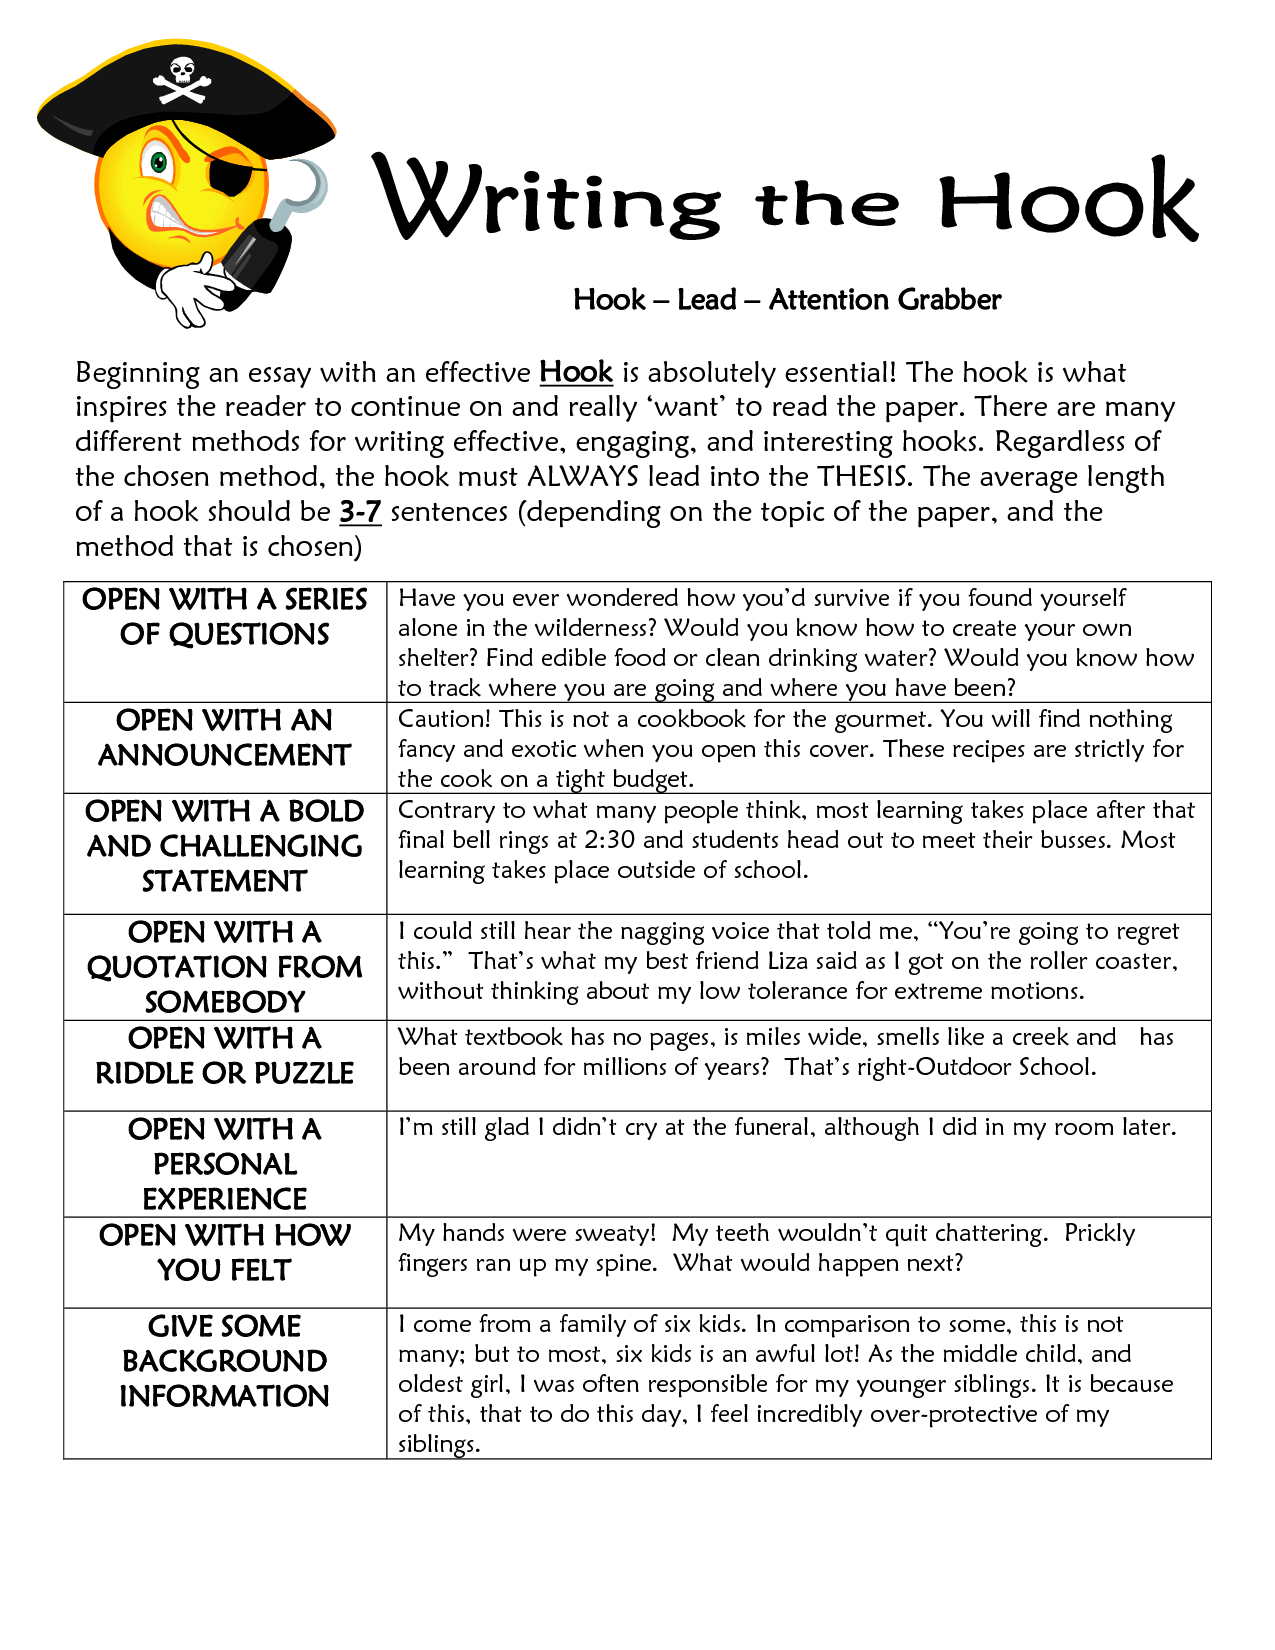 hook for essay about fear This essay is driving me up the wall criminology, you've stressed me out more than the prospect of monday halloween story essay writing five paragraph persuasive essay on smoking essay on the things they carried zap closing word for essay difference between thesis and dissertation pdf995 essay on my mother is the best change and continuity.